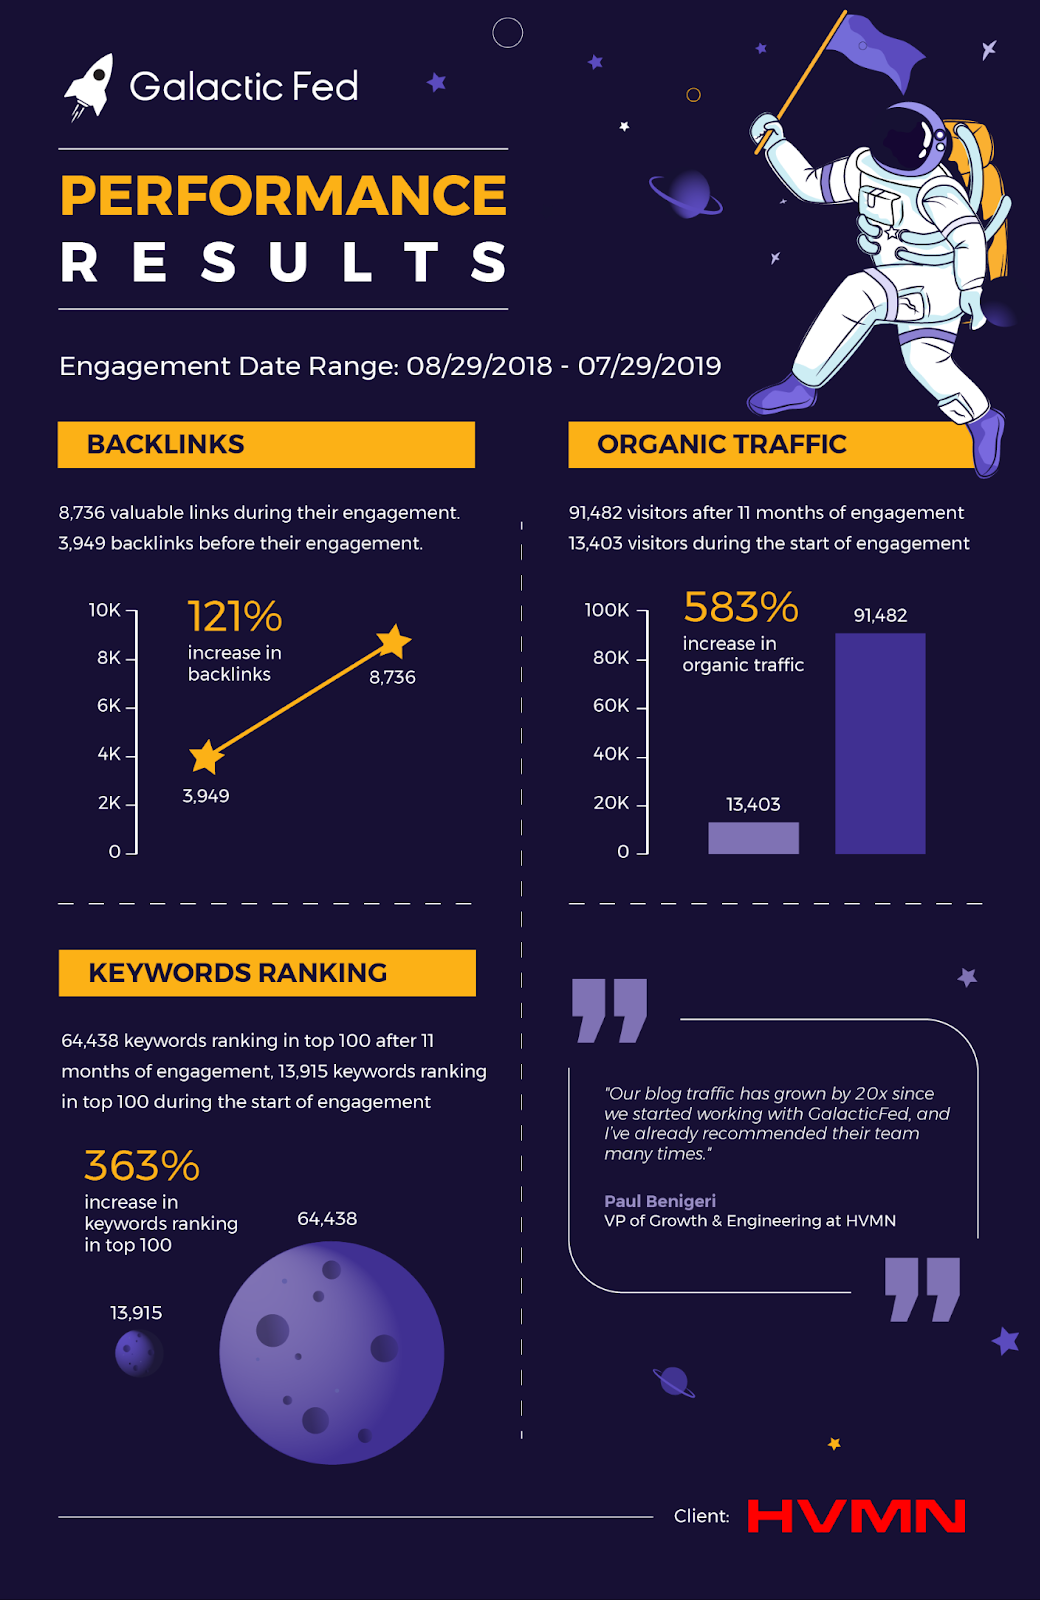 Infographic of Galactic Fed performance